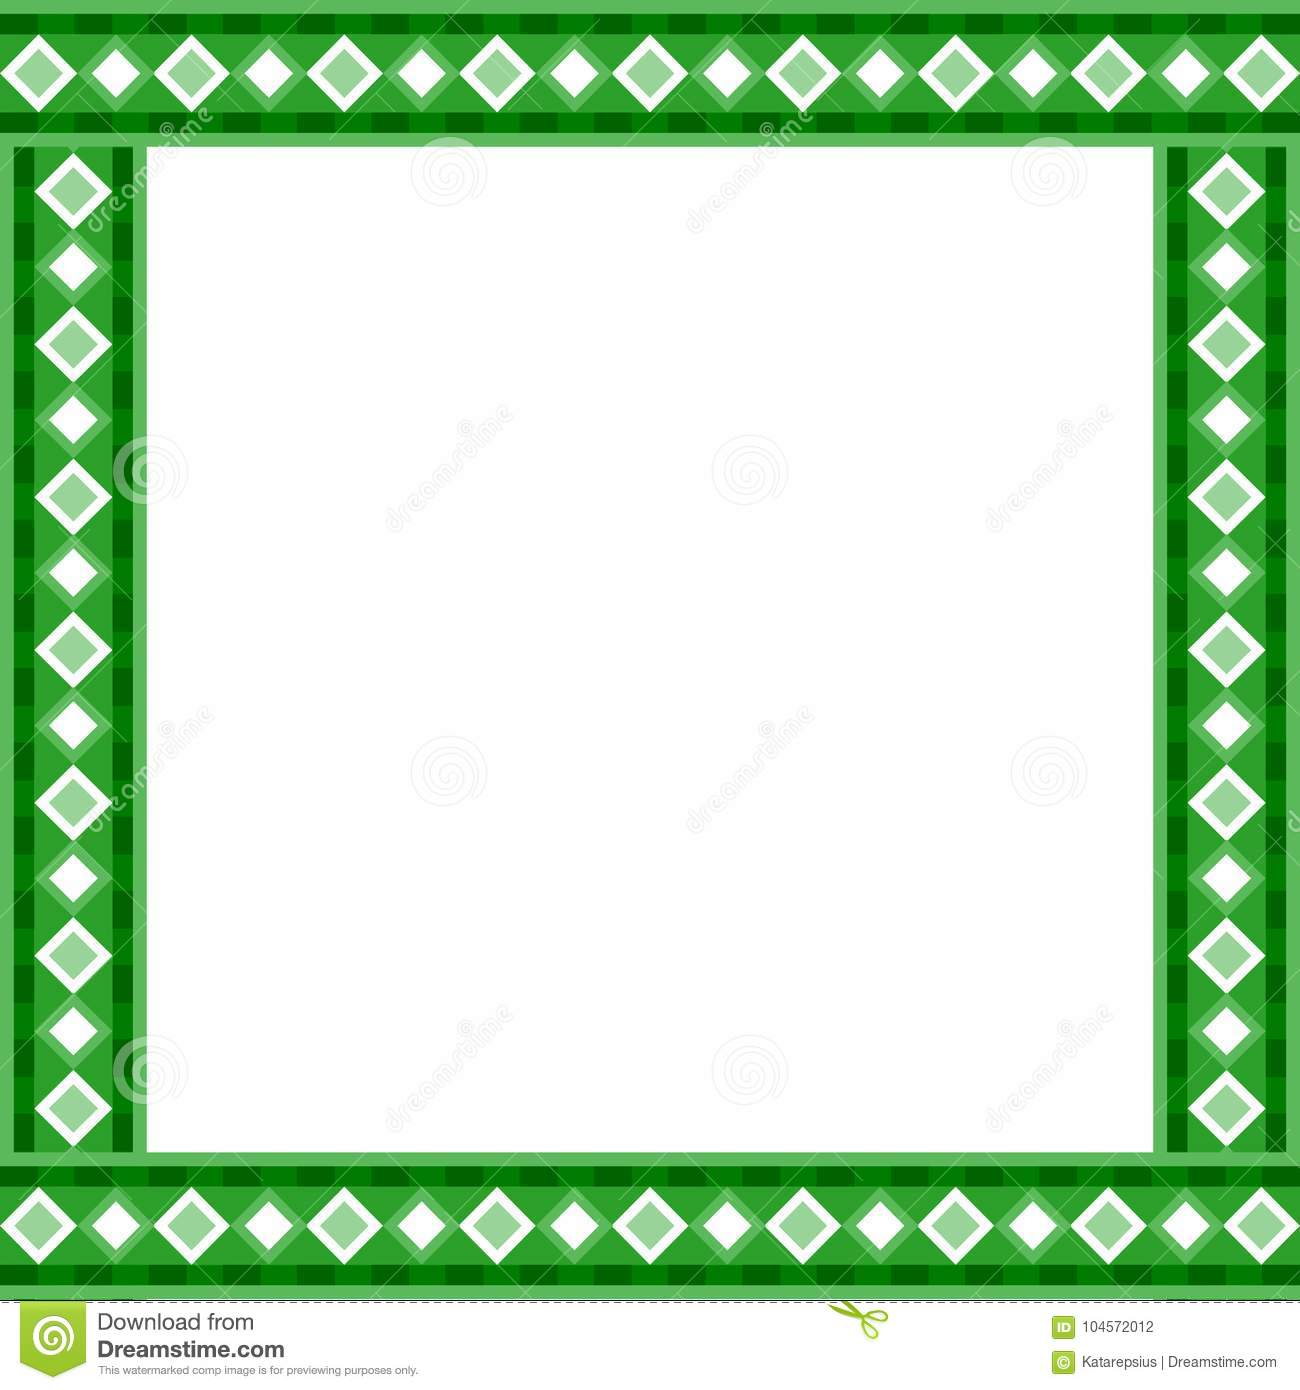 cute christmas or new year border with rhombus pattern on green background vector illustration frame template with copy space